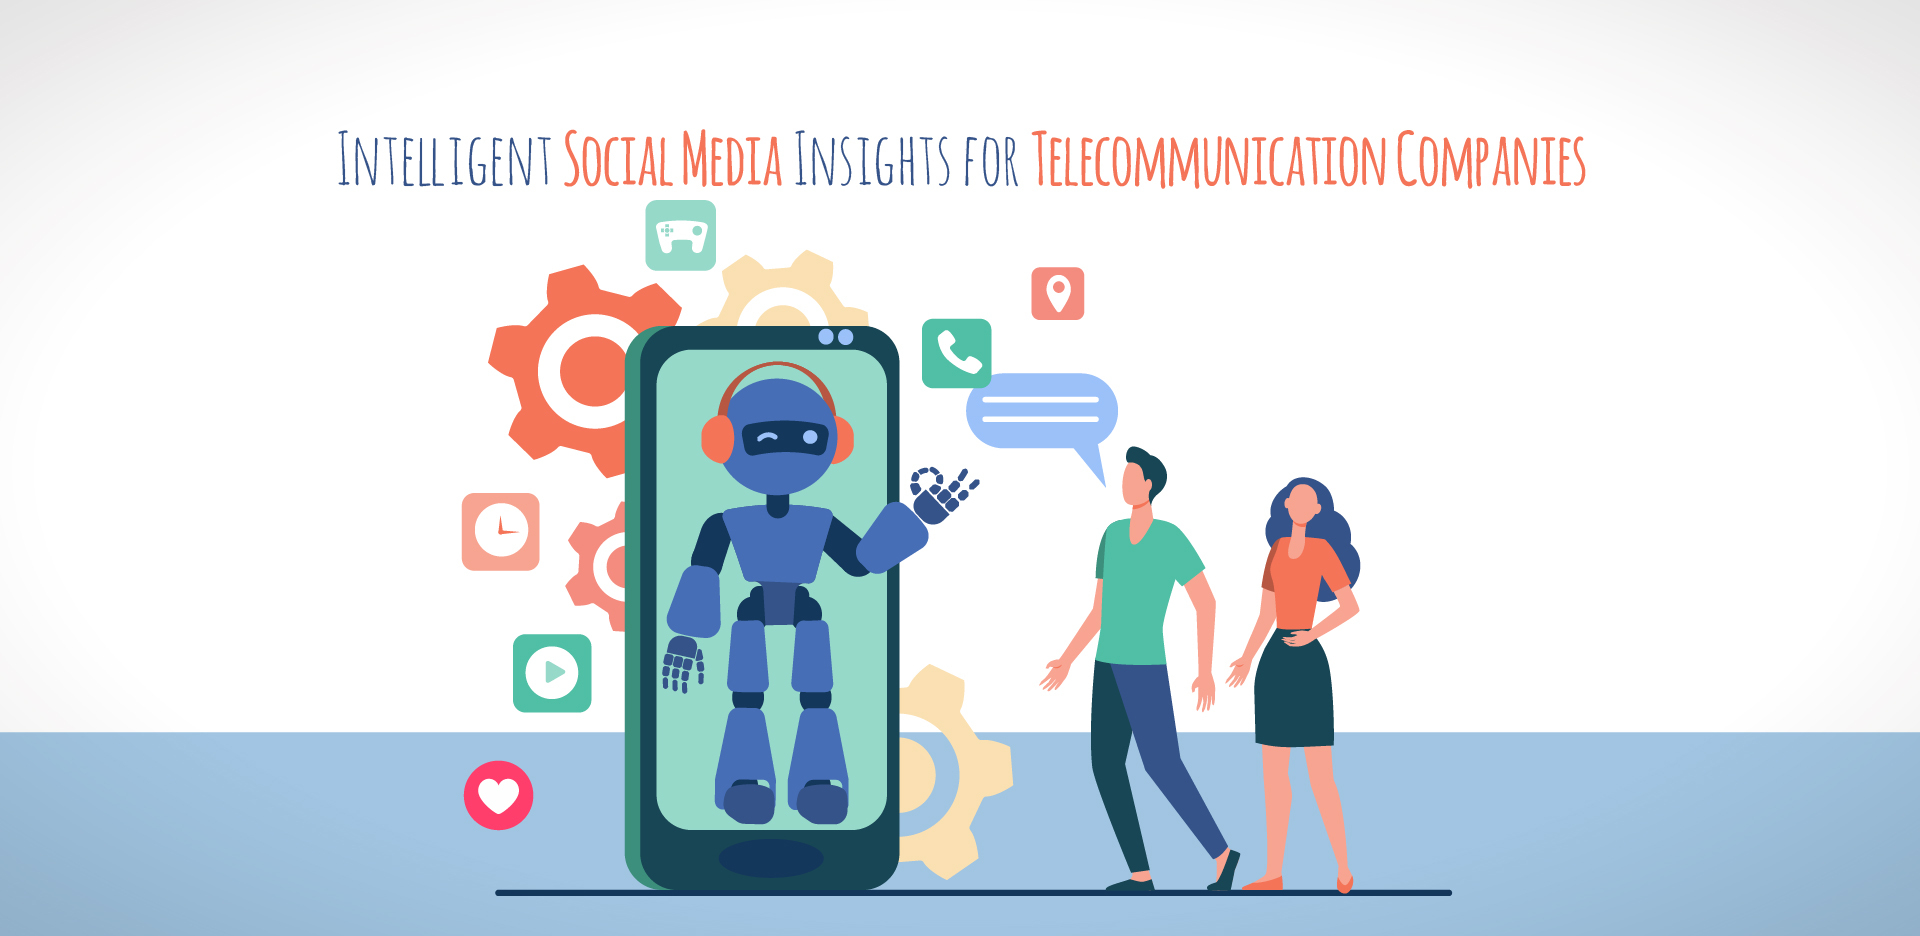 Intelligent Social Media Insights for Telecommunication Companies